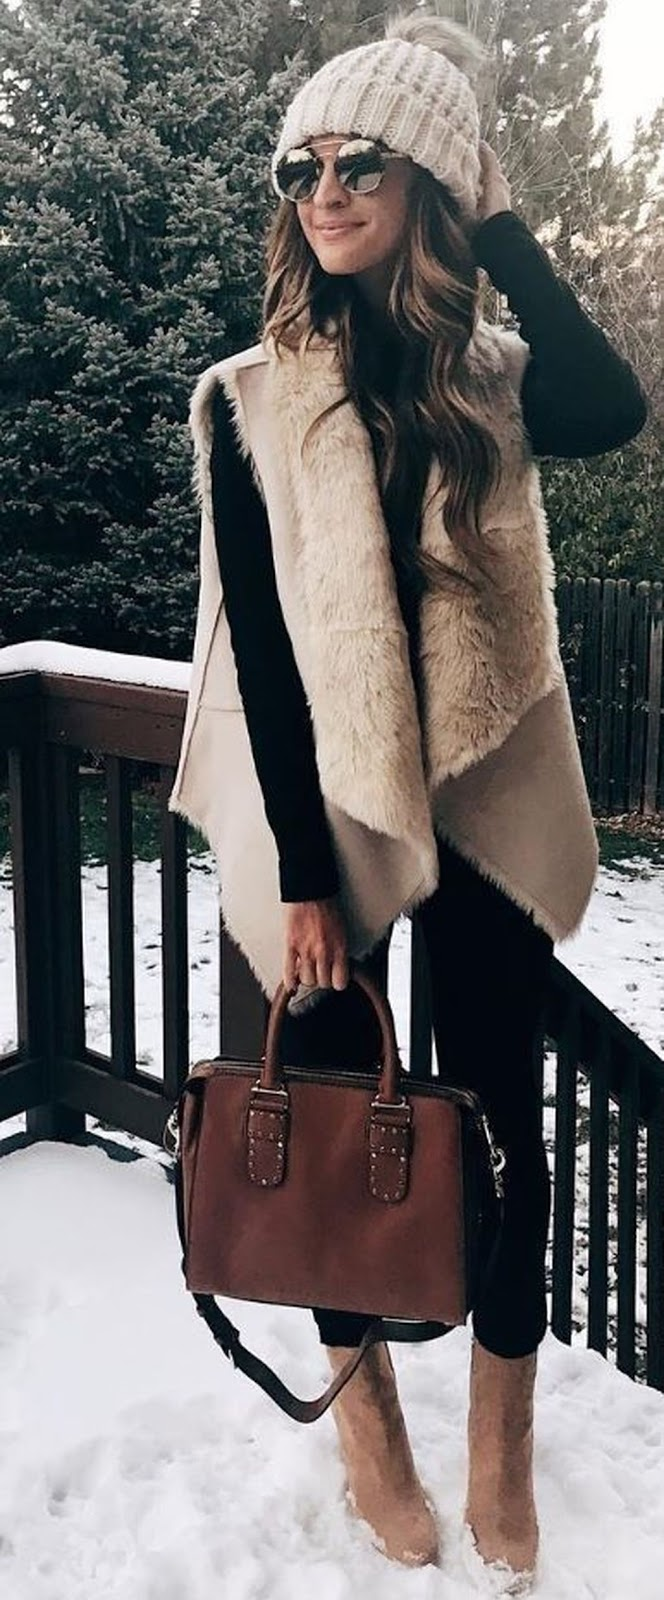 how to style a fur vest : hat + black sweater + bag + skinnies + boots